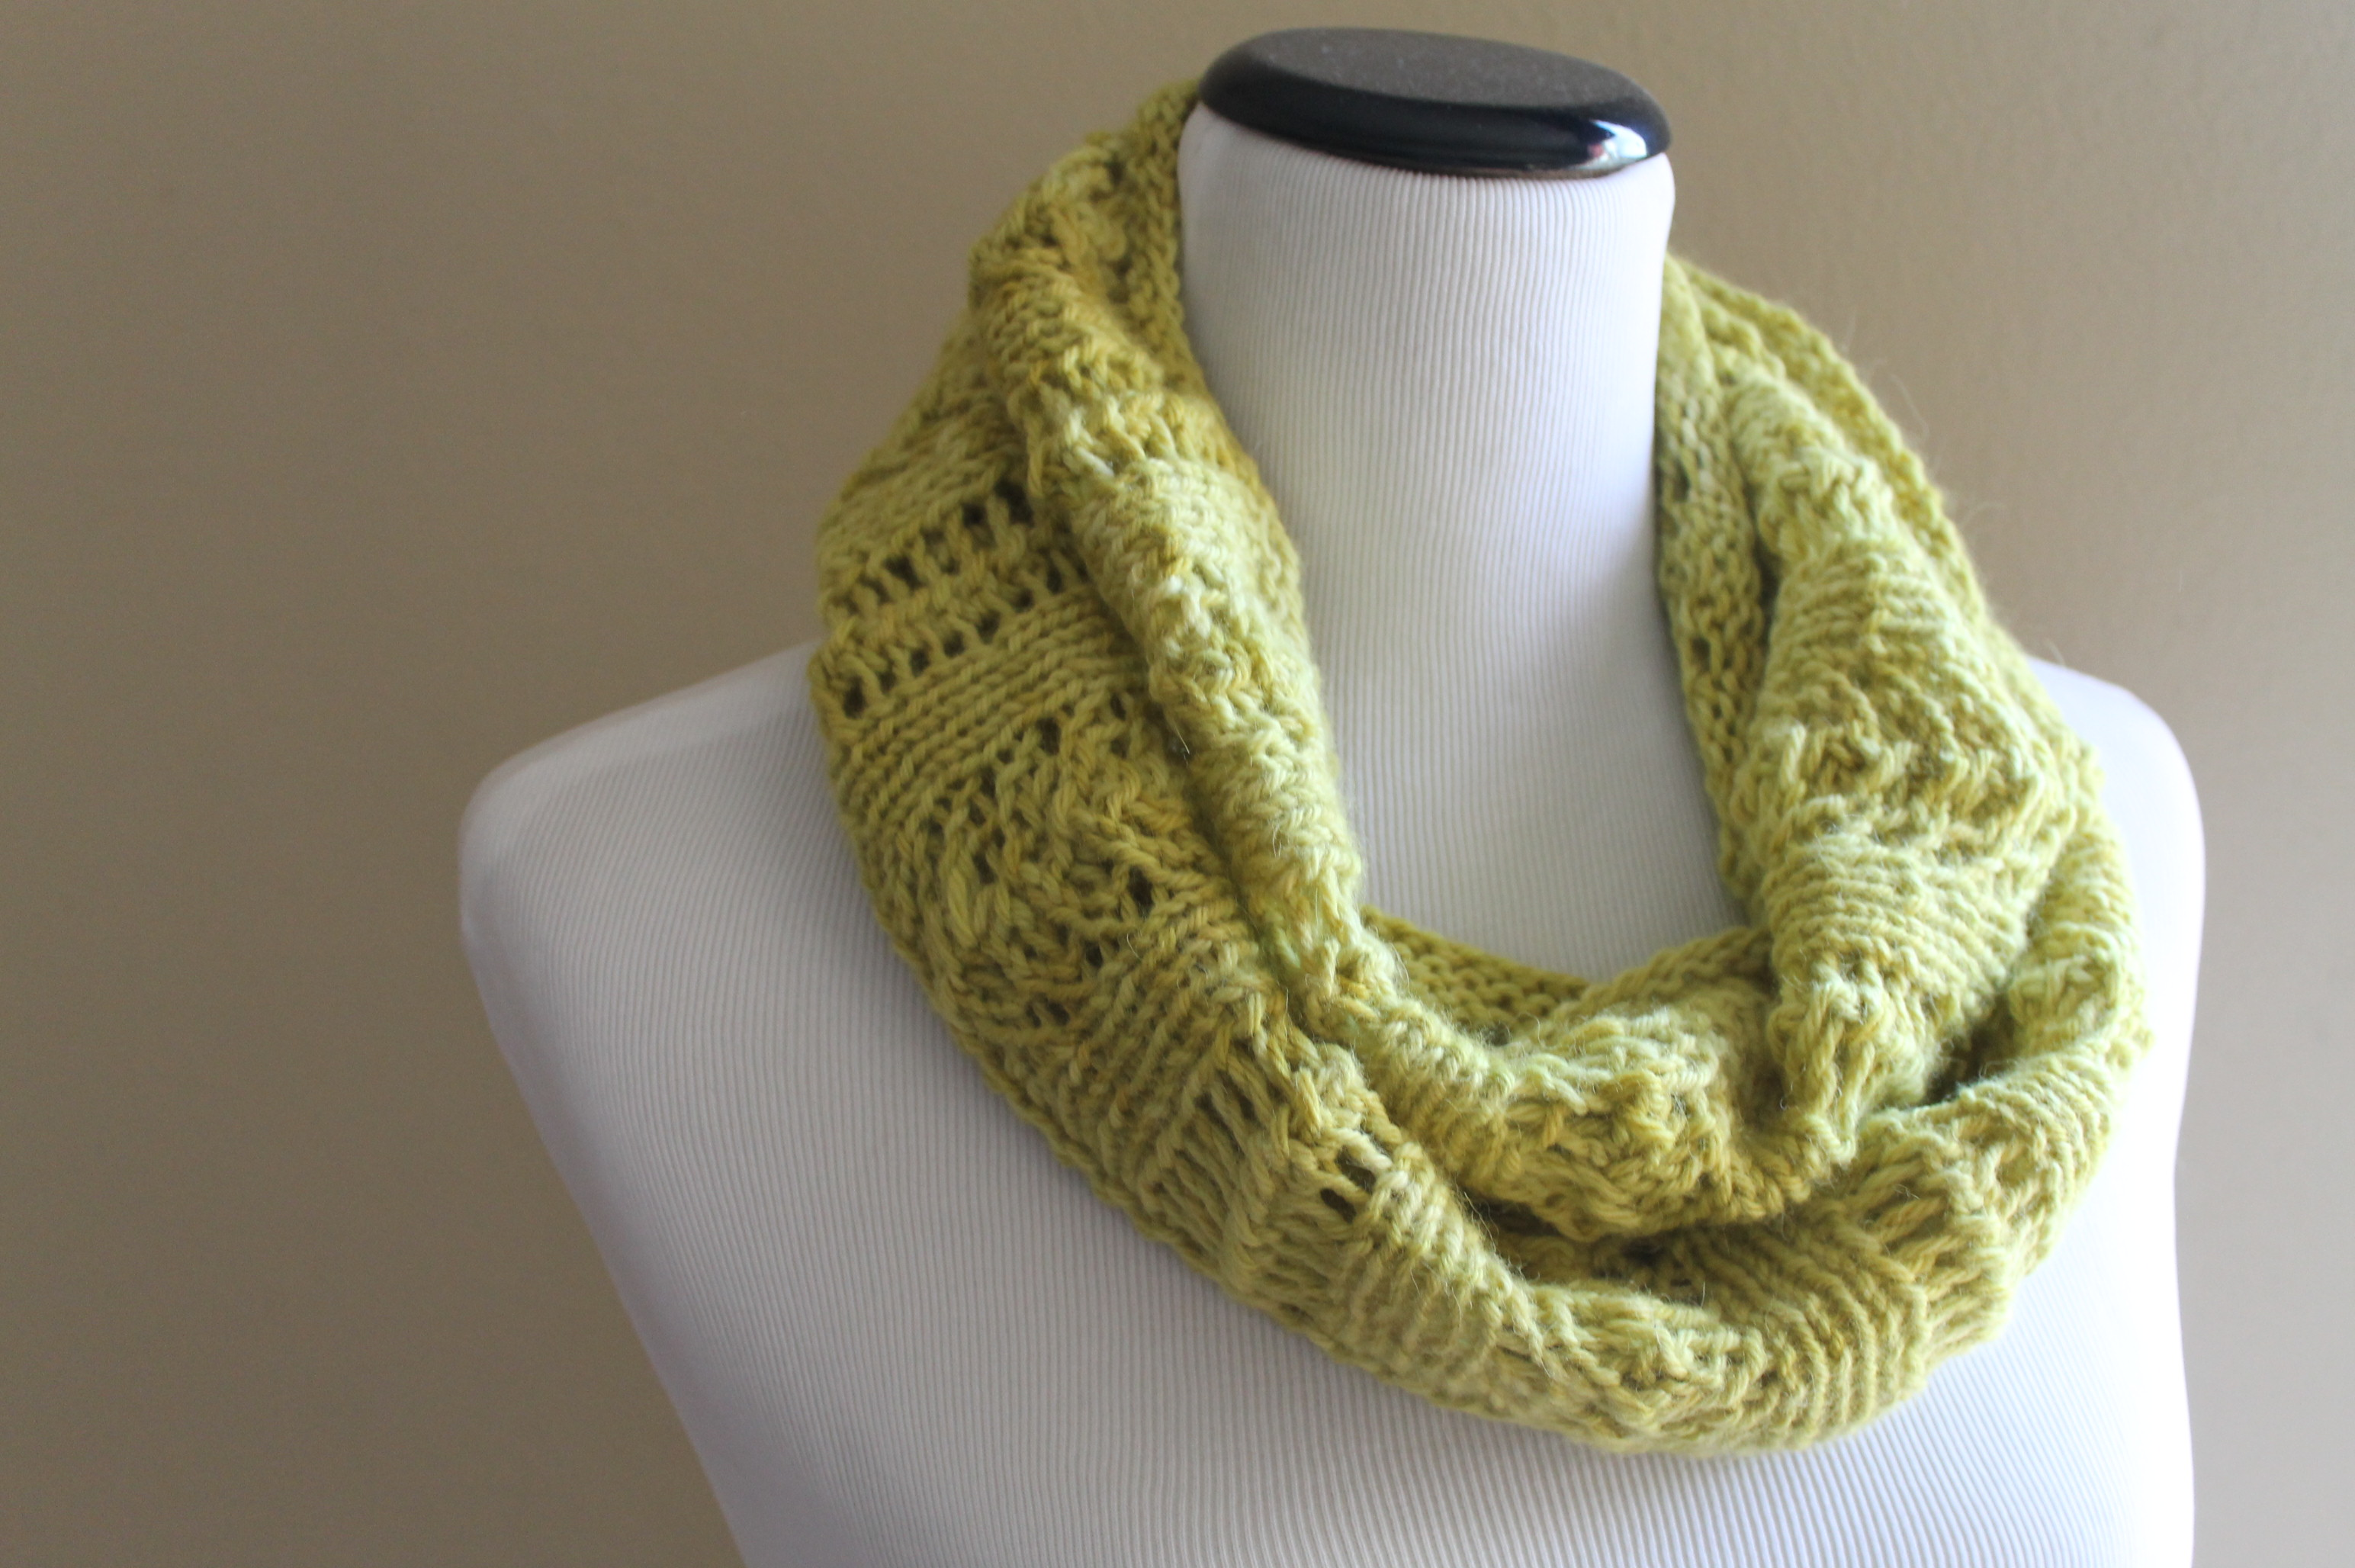 Tuscany lace cowl knitting pattern handmade by anne potter tuscany lace cowl free pattern bankloansurffo Choice Image